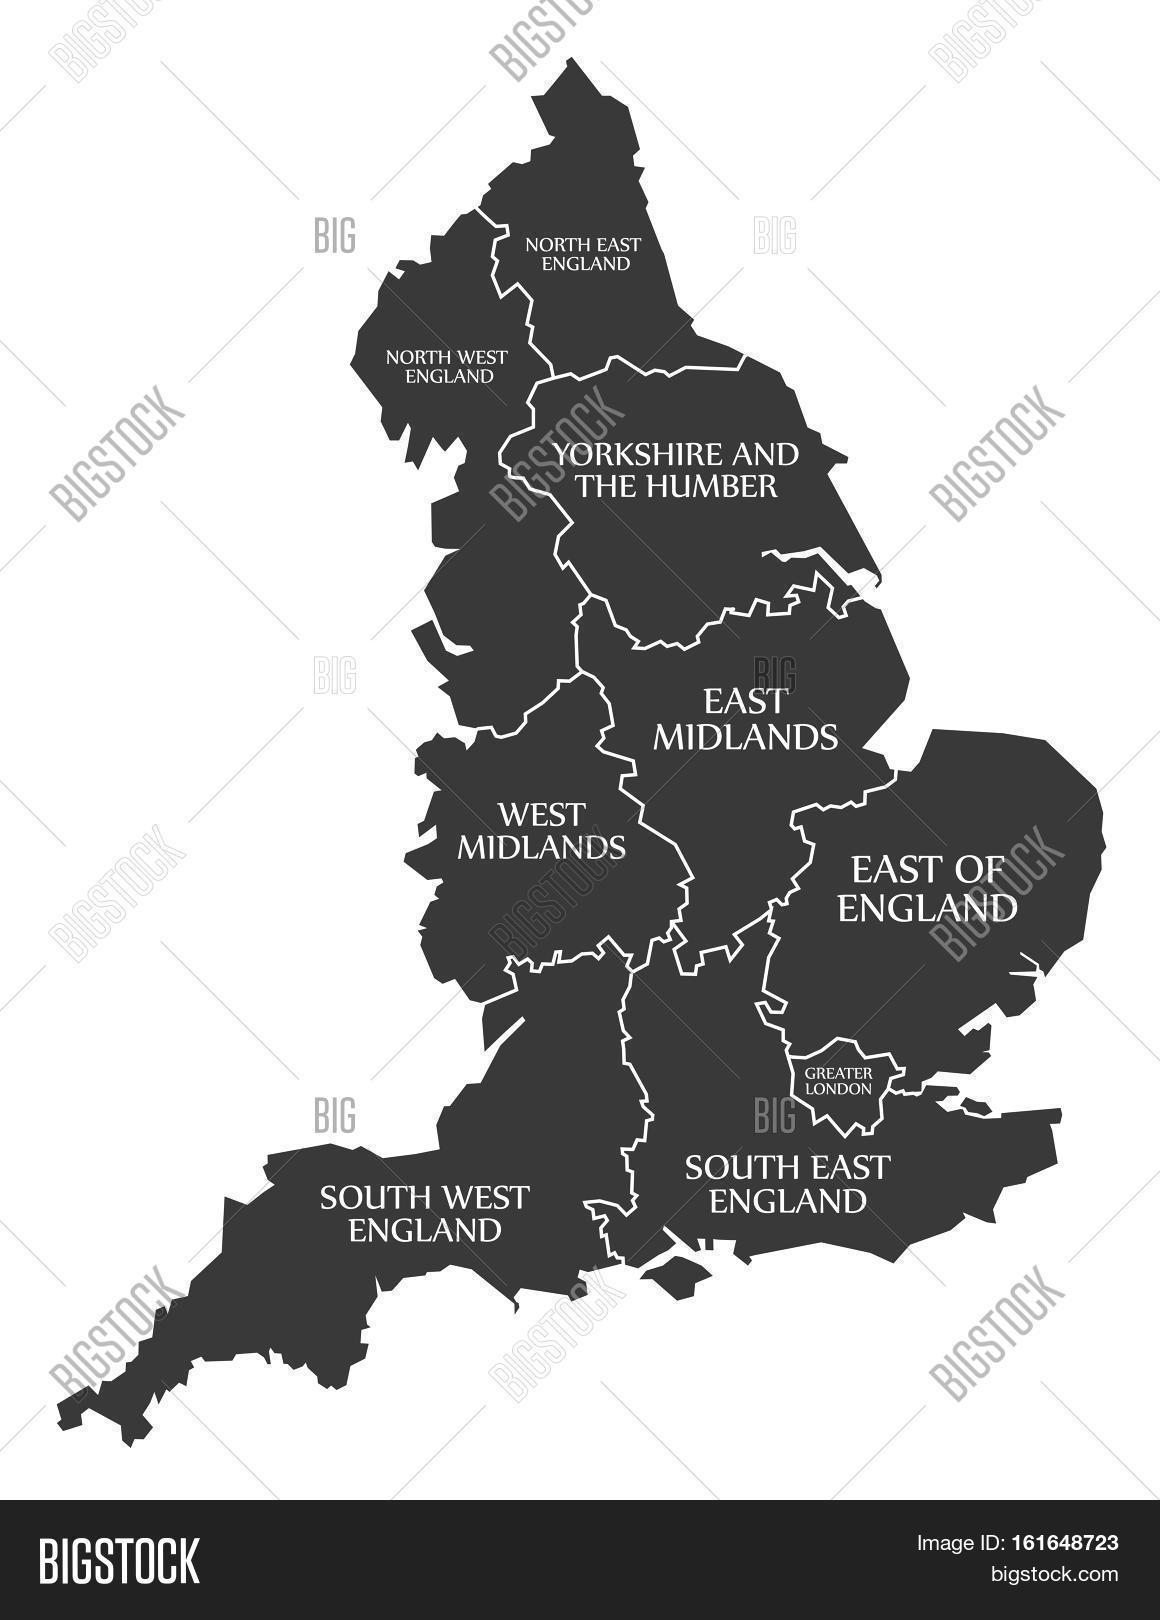 Big Map Of England.England Map Labelled Image Photo Free Trial Bigstock